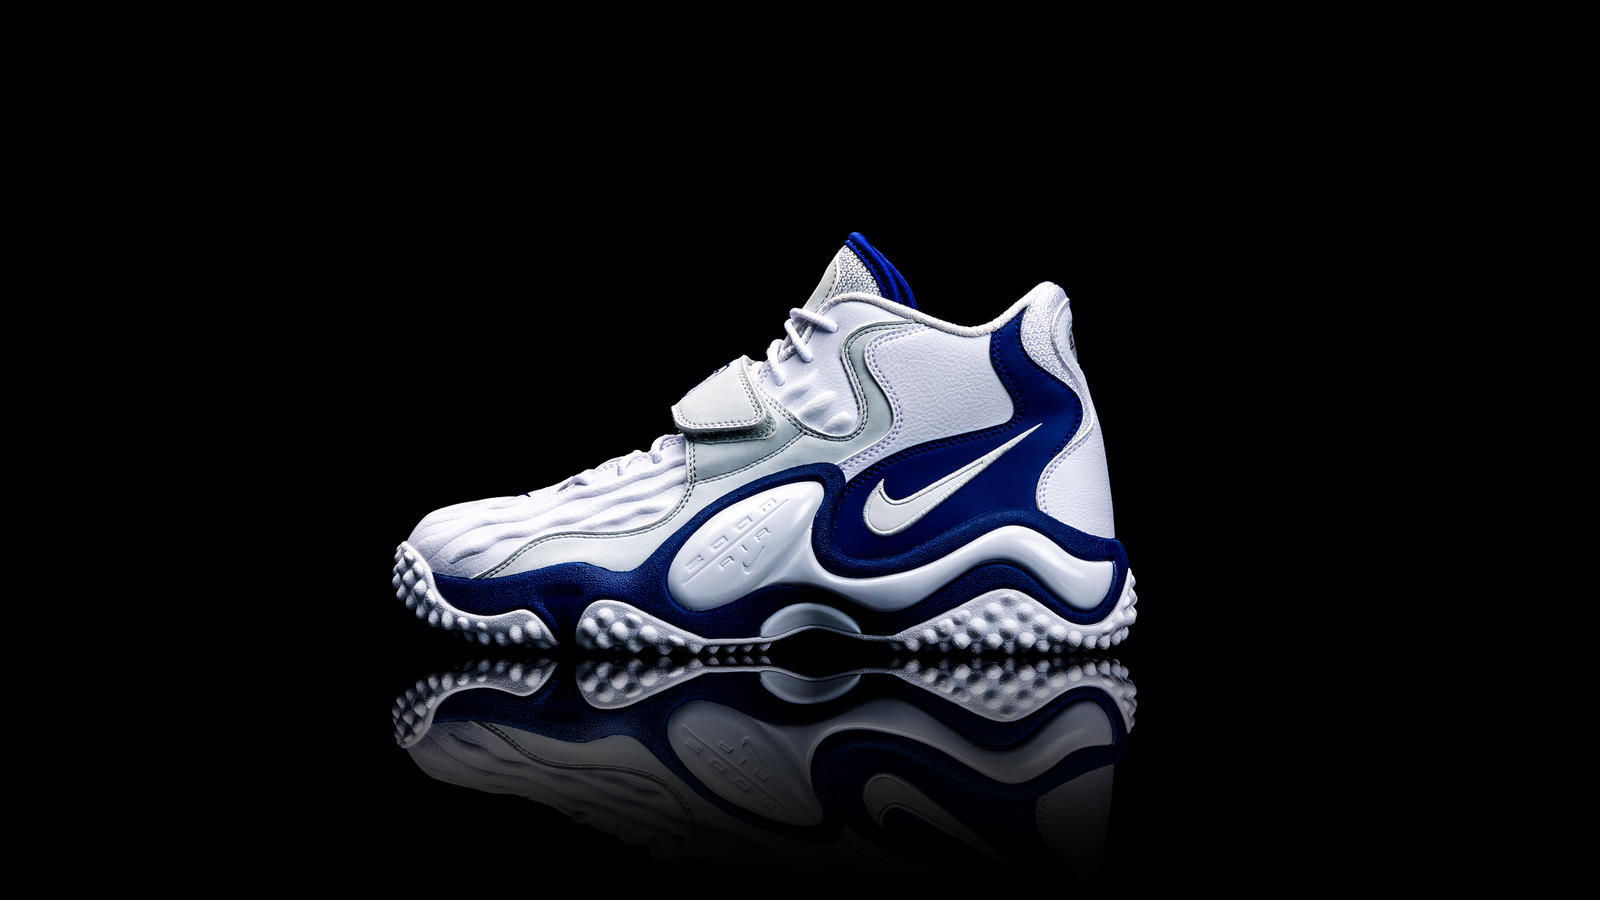 Barry Sanders Nike Air Zoom Turf Jet 97 4